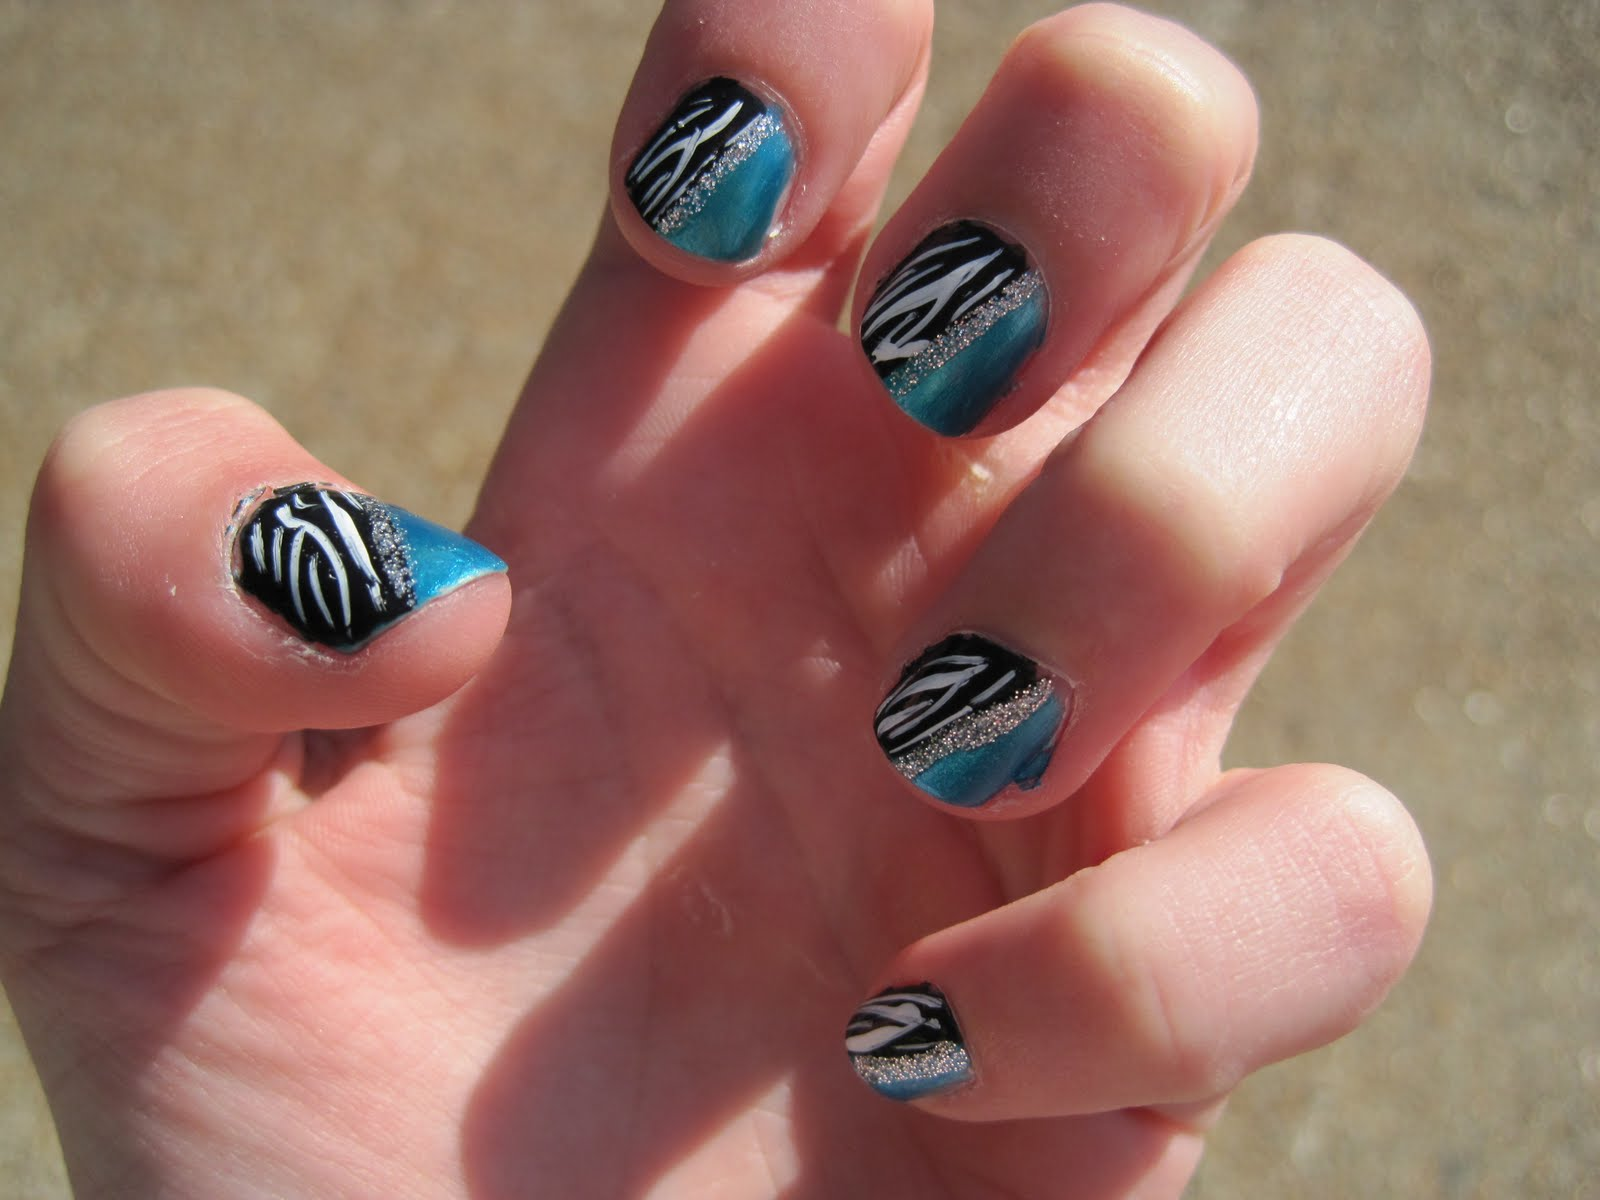 The Exciting Zebra print nail art designs Photo